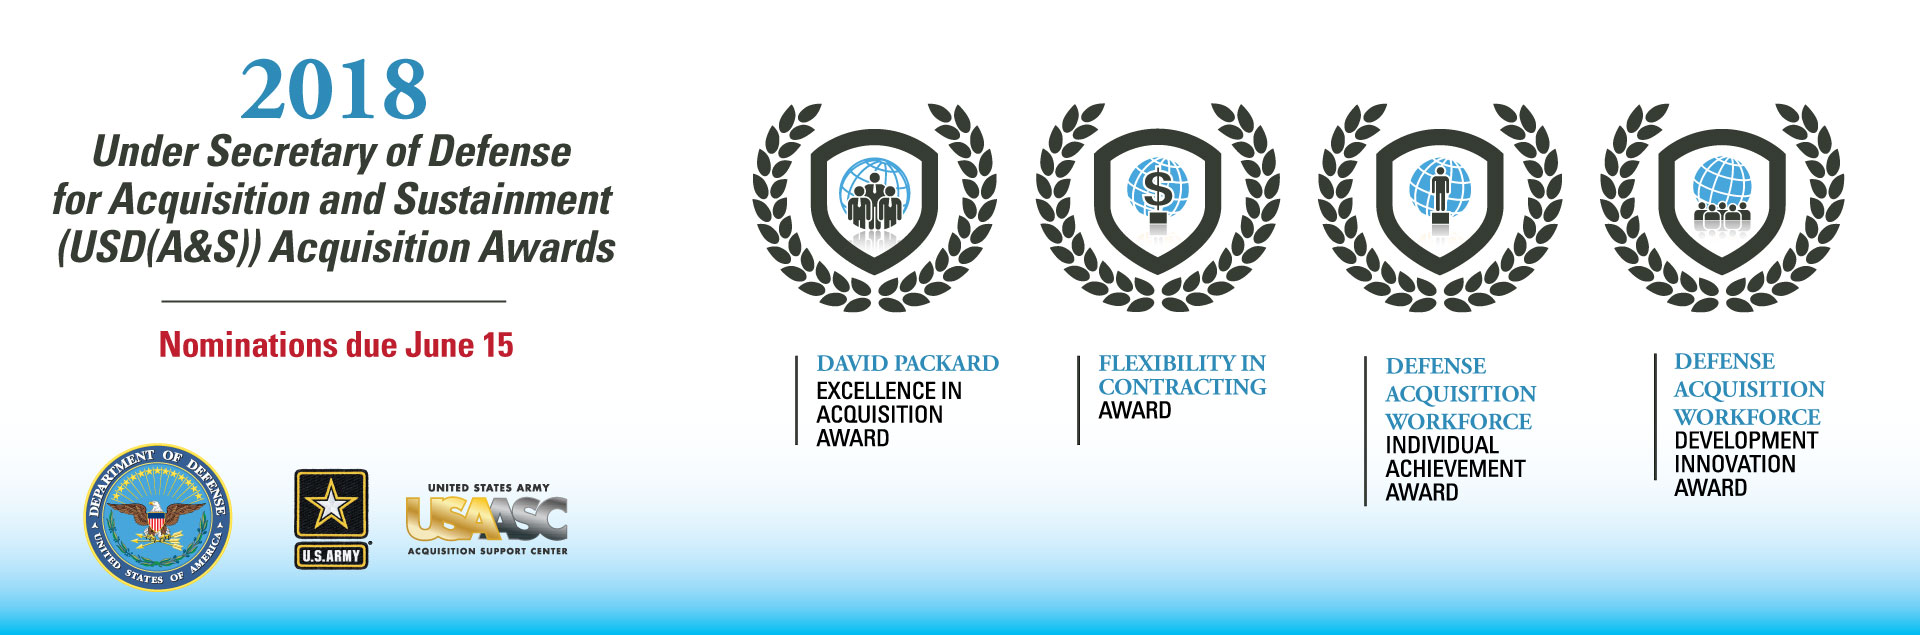 2018 Acquisition Awards